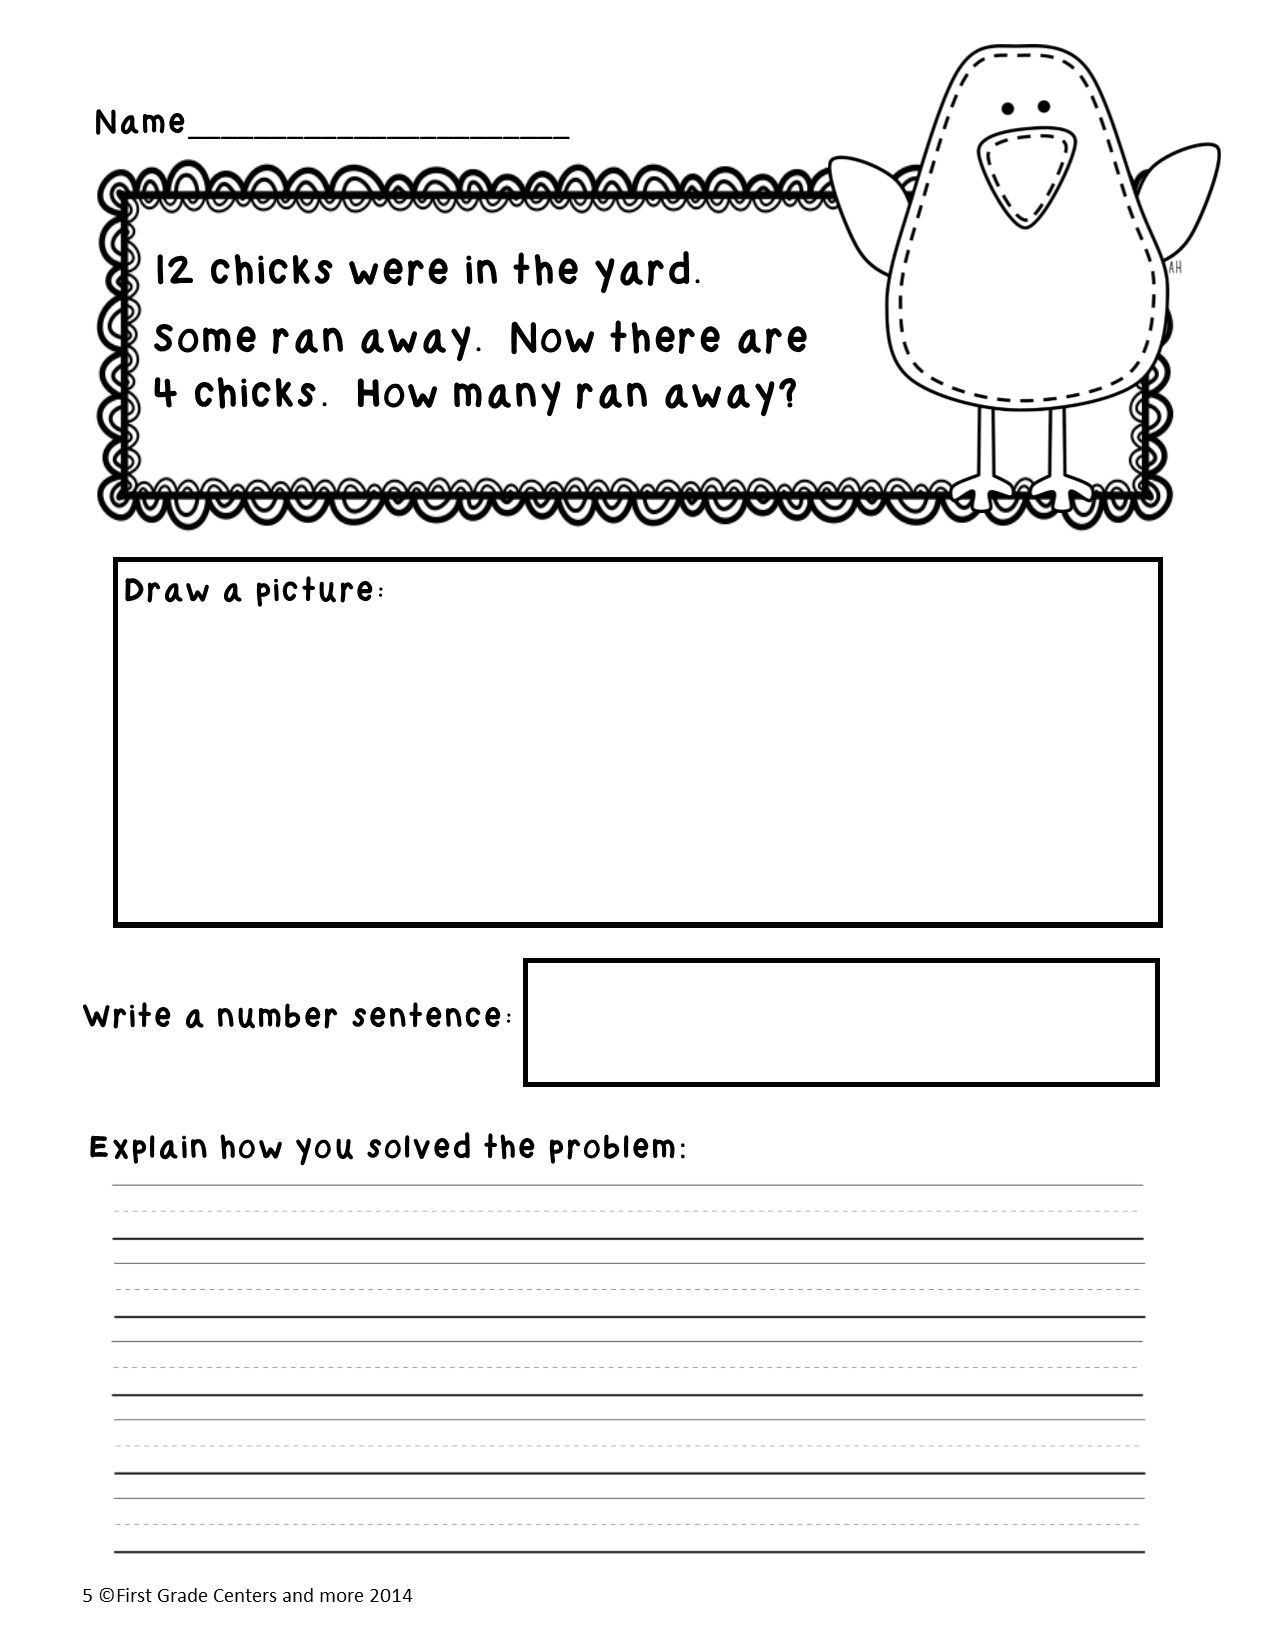 Math Problem Solving For Easter First Grade 1 Oa 1